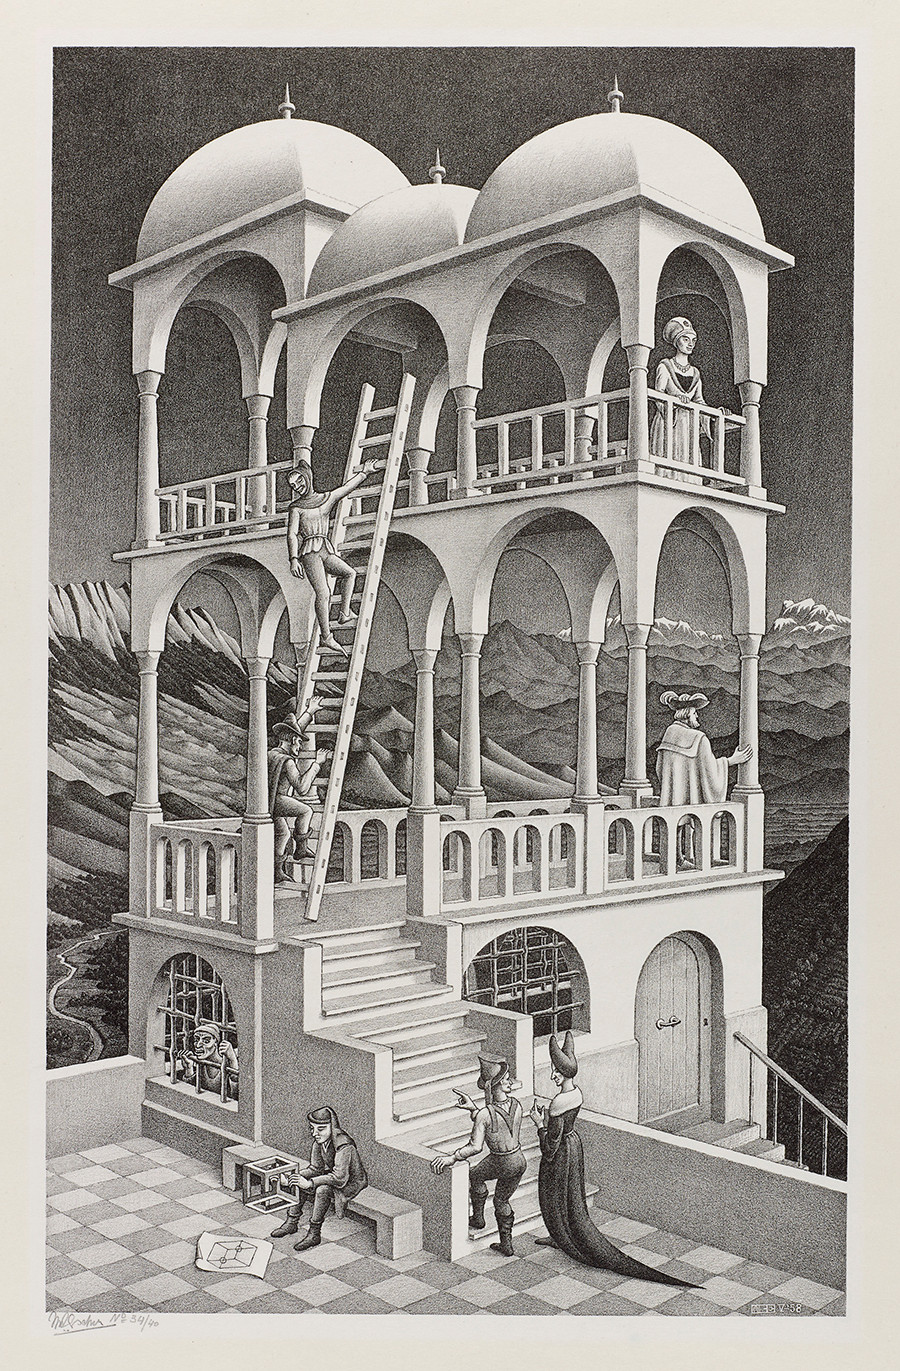 M. C. Escher: Belvedere May 1958, lithograph. Escher Collection, Gemeentemuseum Den Haag, The Hague, the Netherlands © The M. C. Escher Company, the Netherlands. All rights reserved.